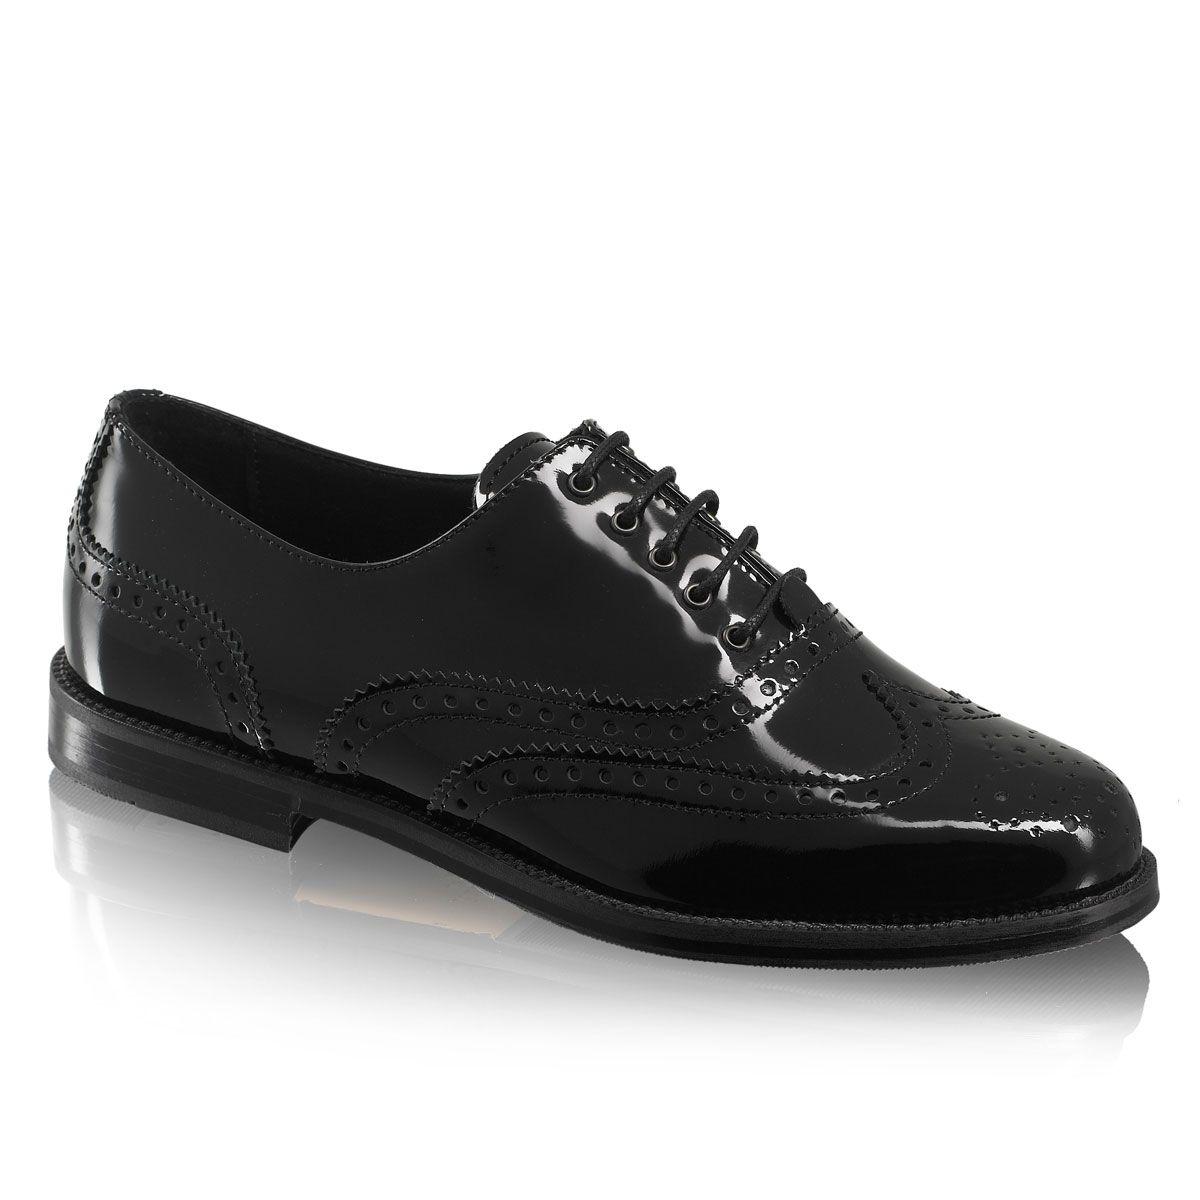 Size 2 Suitable For Men And Women Of All Ages In All Seasons Clothing, Shoes & Accessories Kids' Clothing, Shoes & Accs Russell And Bromley Black Leather Patented Shoes